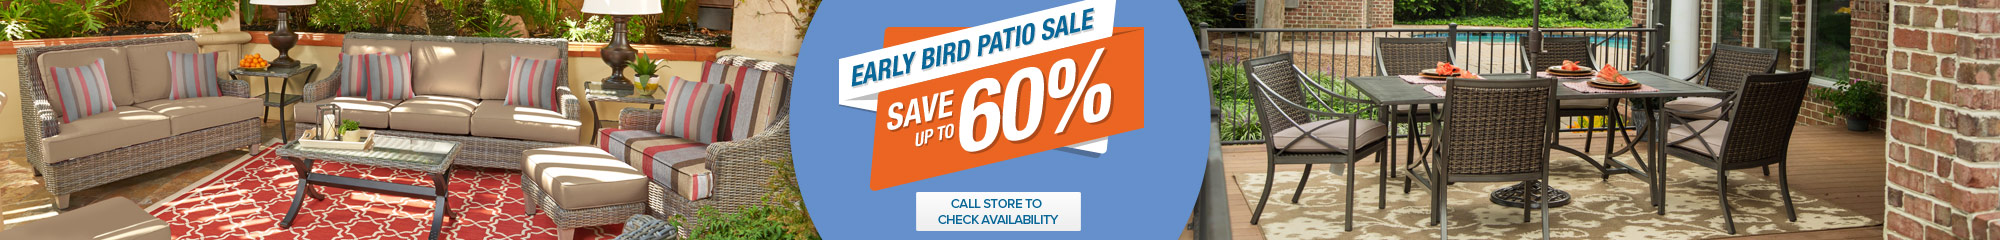 Early Bird Patio Sale - Save up to 60%